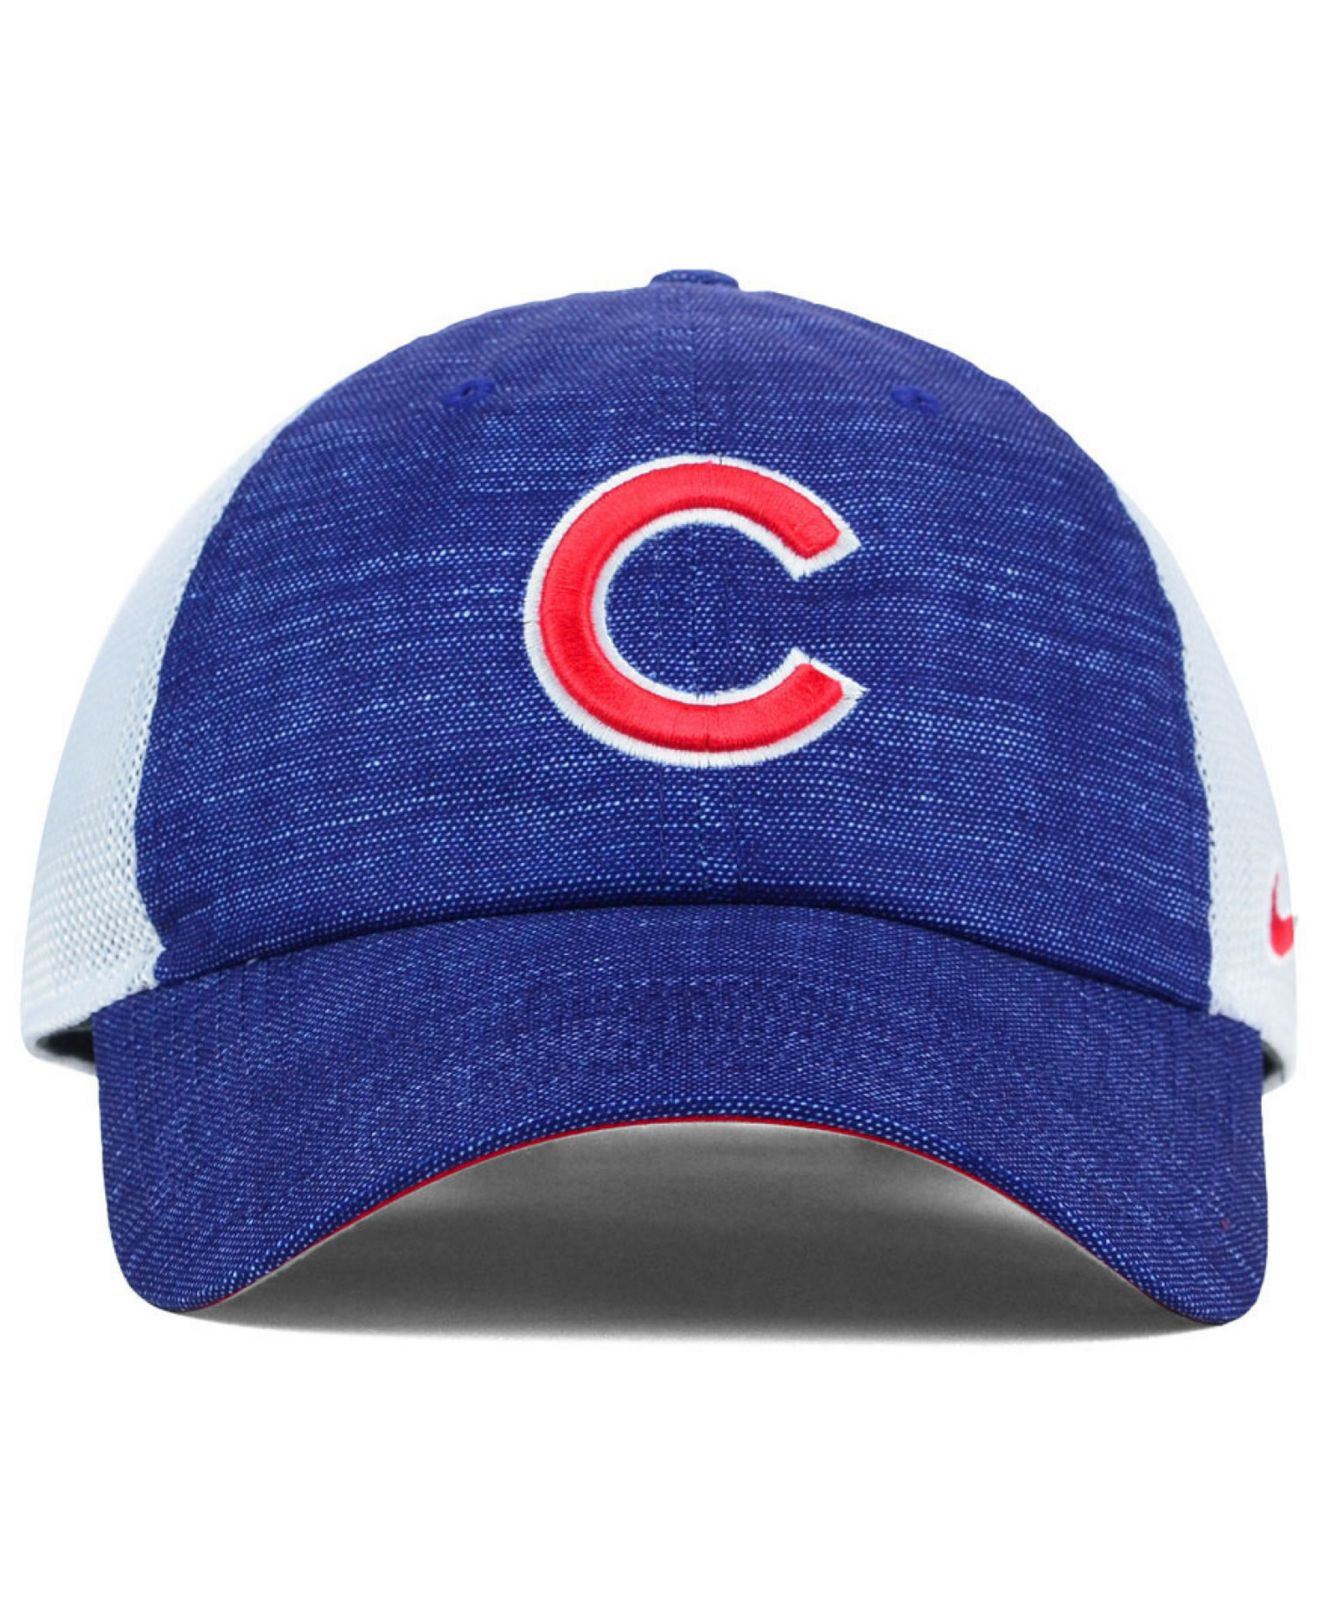 4c5405a84e475 Nike Chicago Cubs Dri-Fit Adjustable Cap in Blue for Men - Lyst